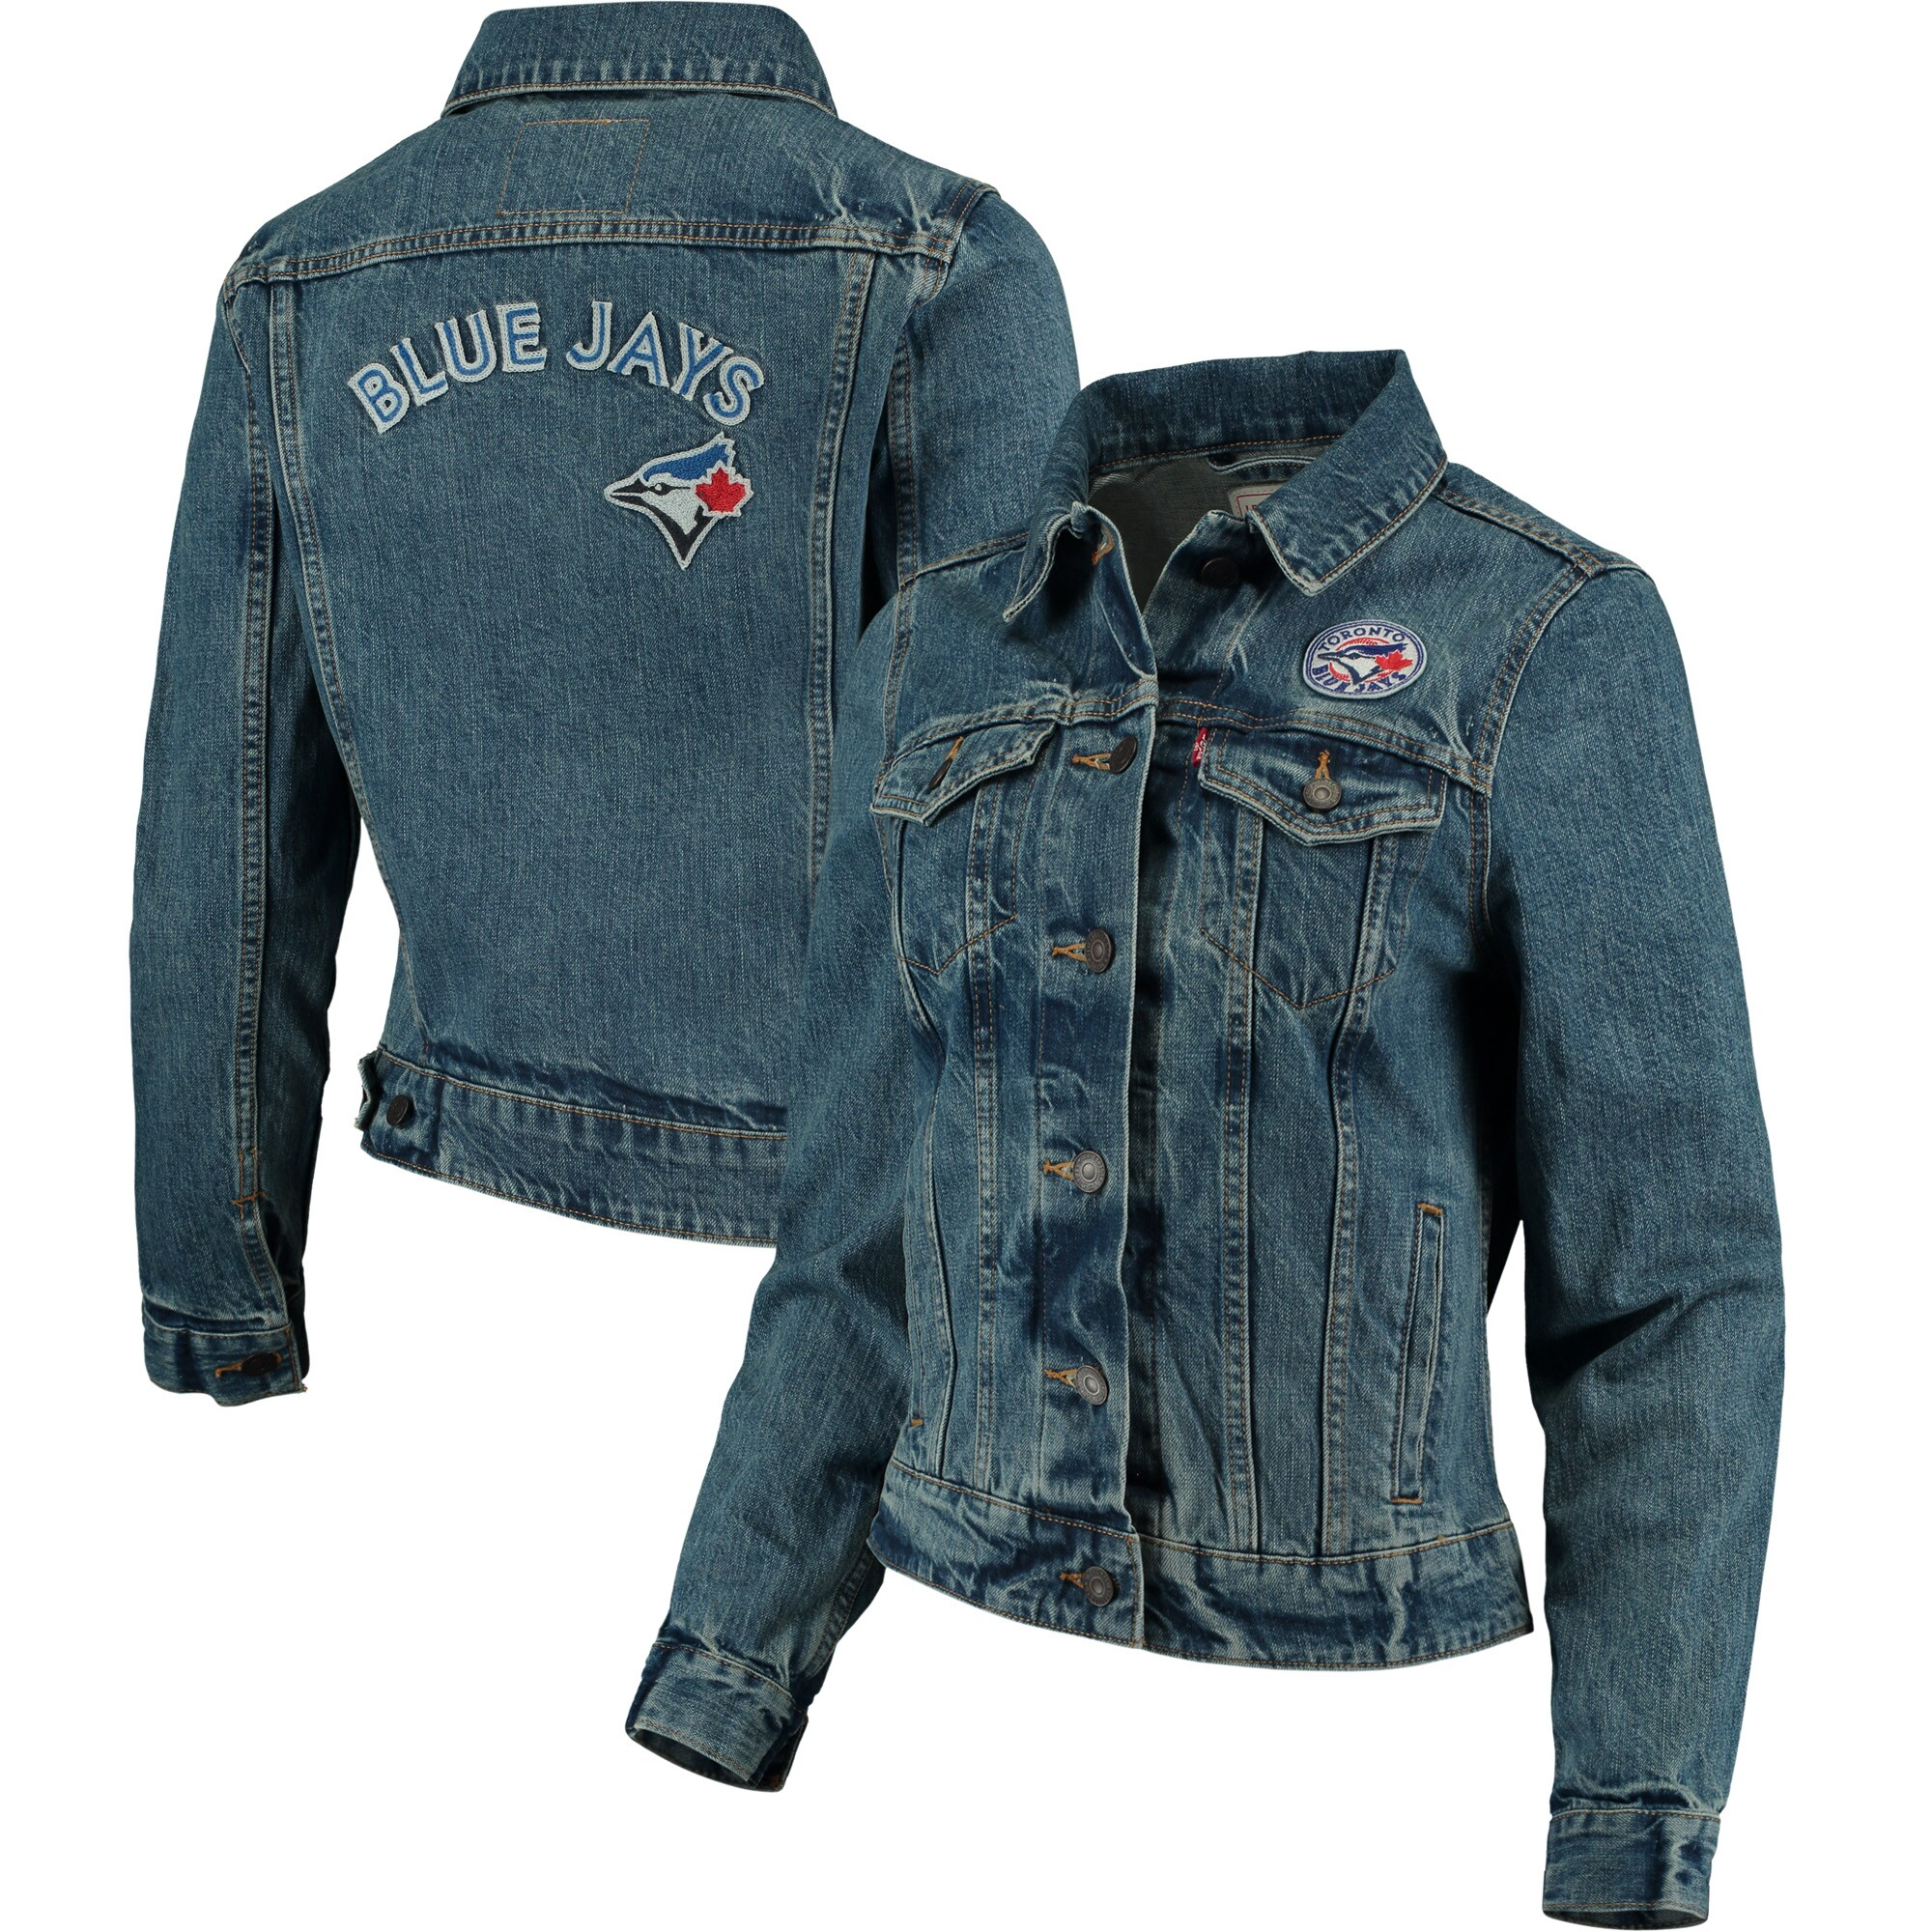 Toronto Blue Jays Levi's Women's Trucker Jacket - Denim